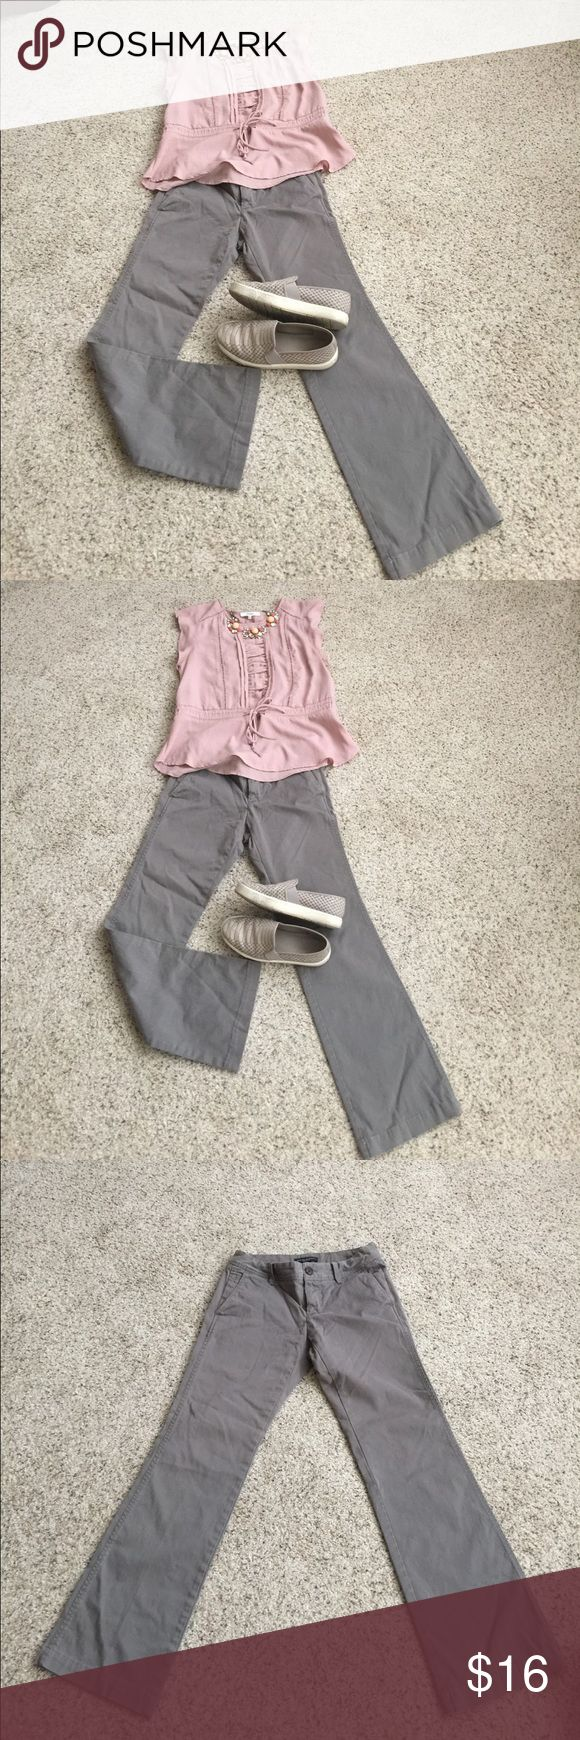 """Gray Banana Republic chinos Super comfy and versatile gray boot cut chinos. Altered, worn and washed once, inseam has been altered to 29"""". Side very deep pockets, and back slit pockets. Flattering all around can be dressed up or down, brushed cotton gives a super soft finish. 27"""" all around the waist. Banana Republic Martin fit Banana Republic Pants Boot Cut & Flare"""